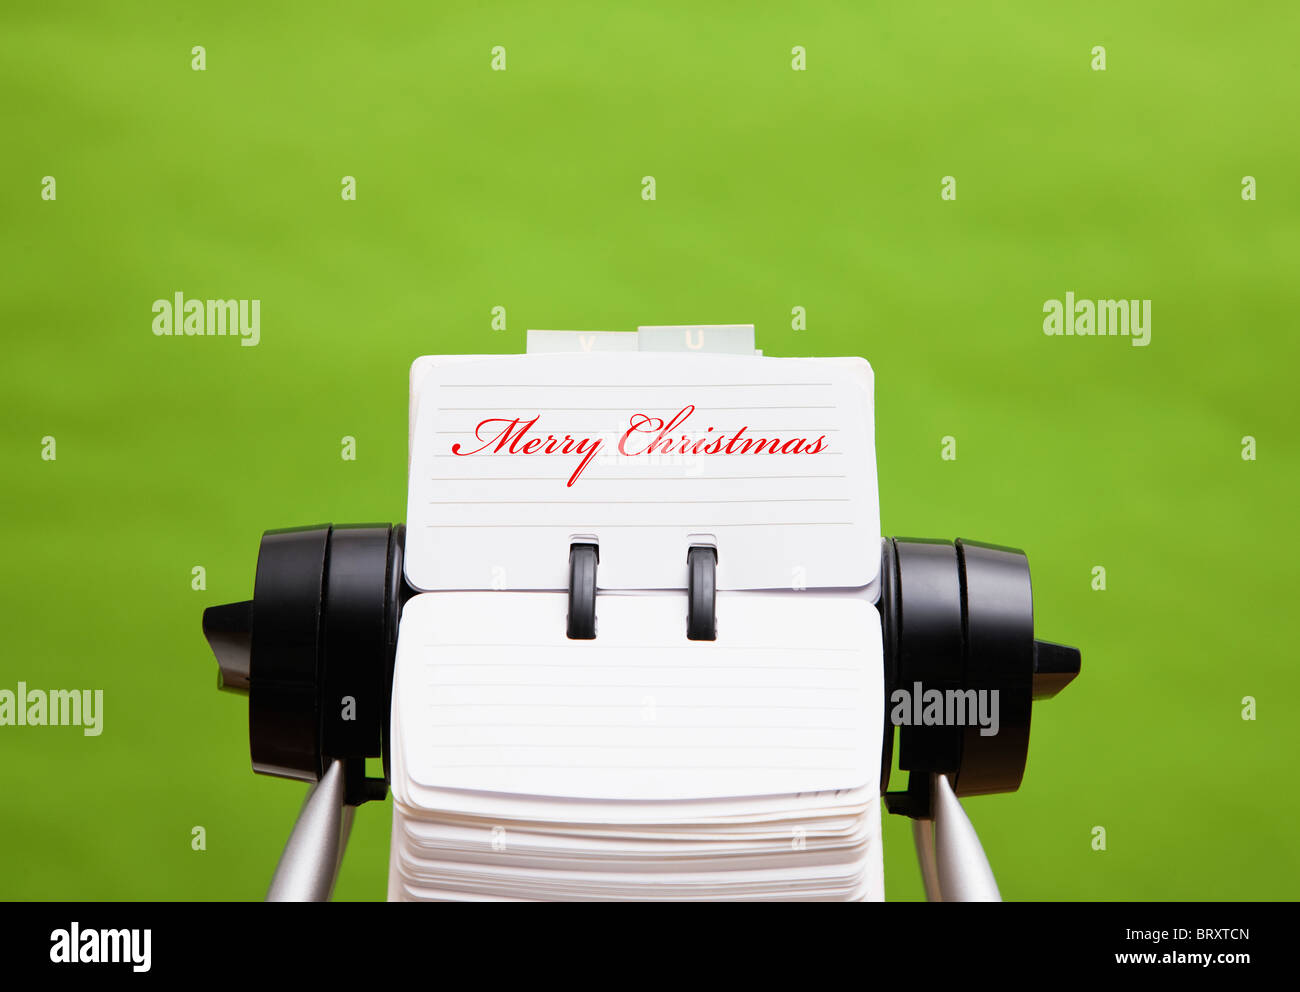 Rotary card file with merry Christmas card - Stock Image